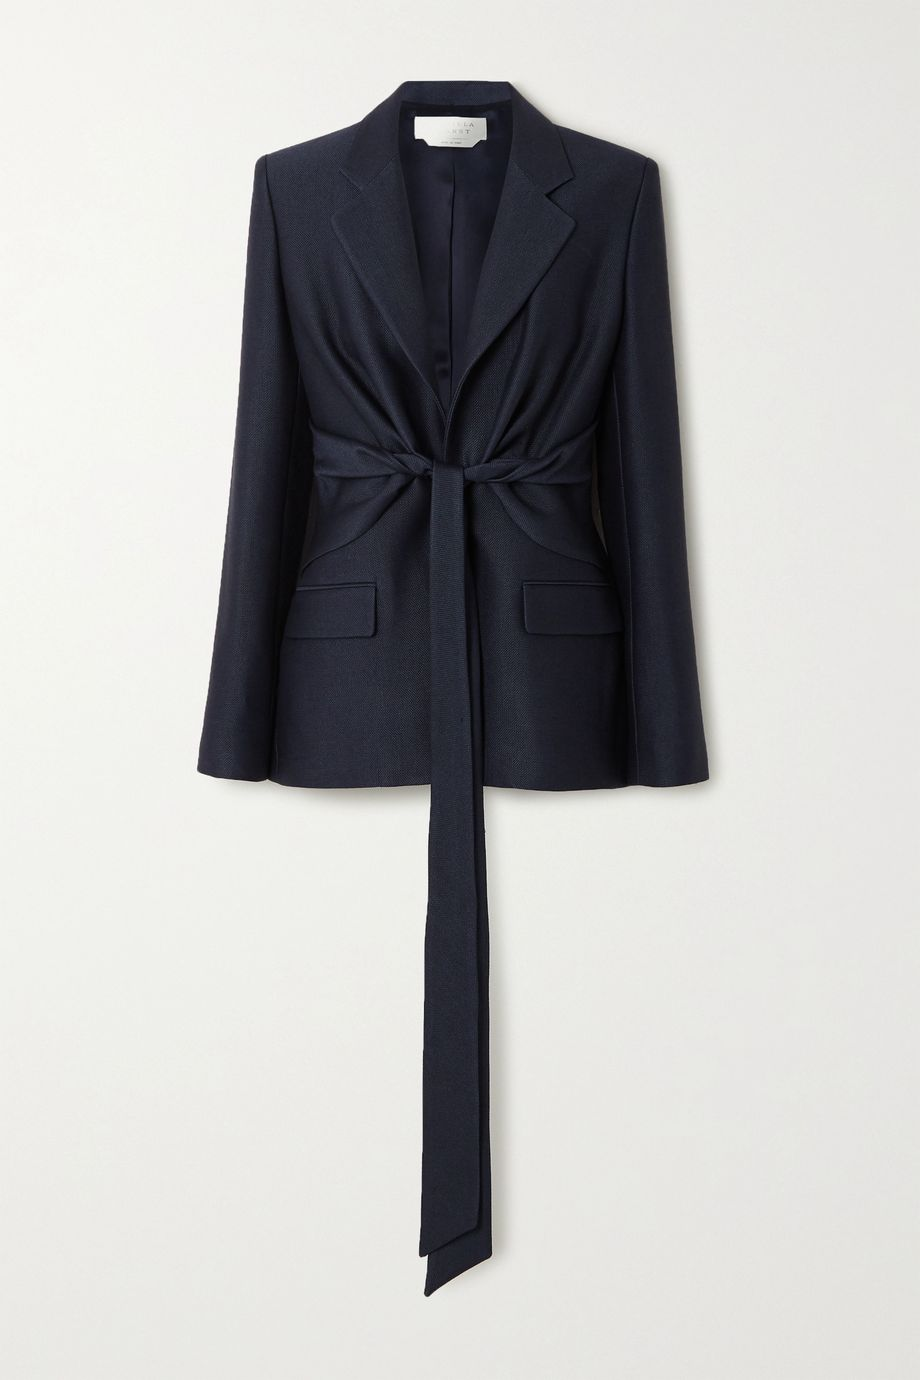 Gabriela Hearst Grant tie-front wool and silk-blend blazer